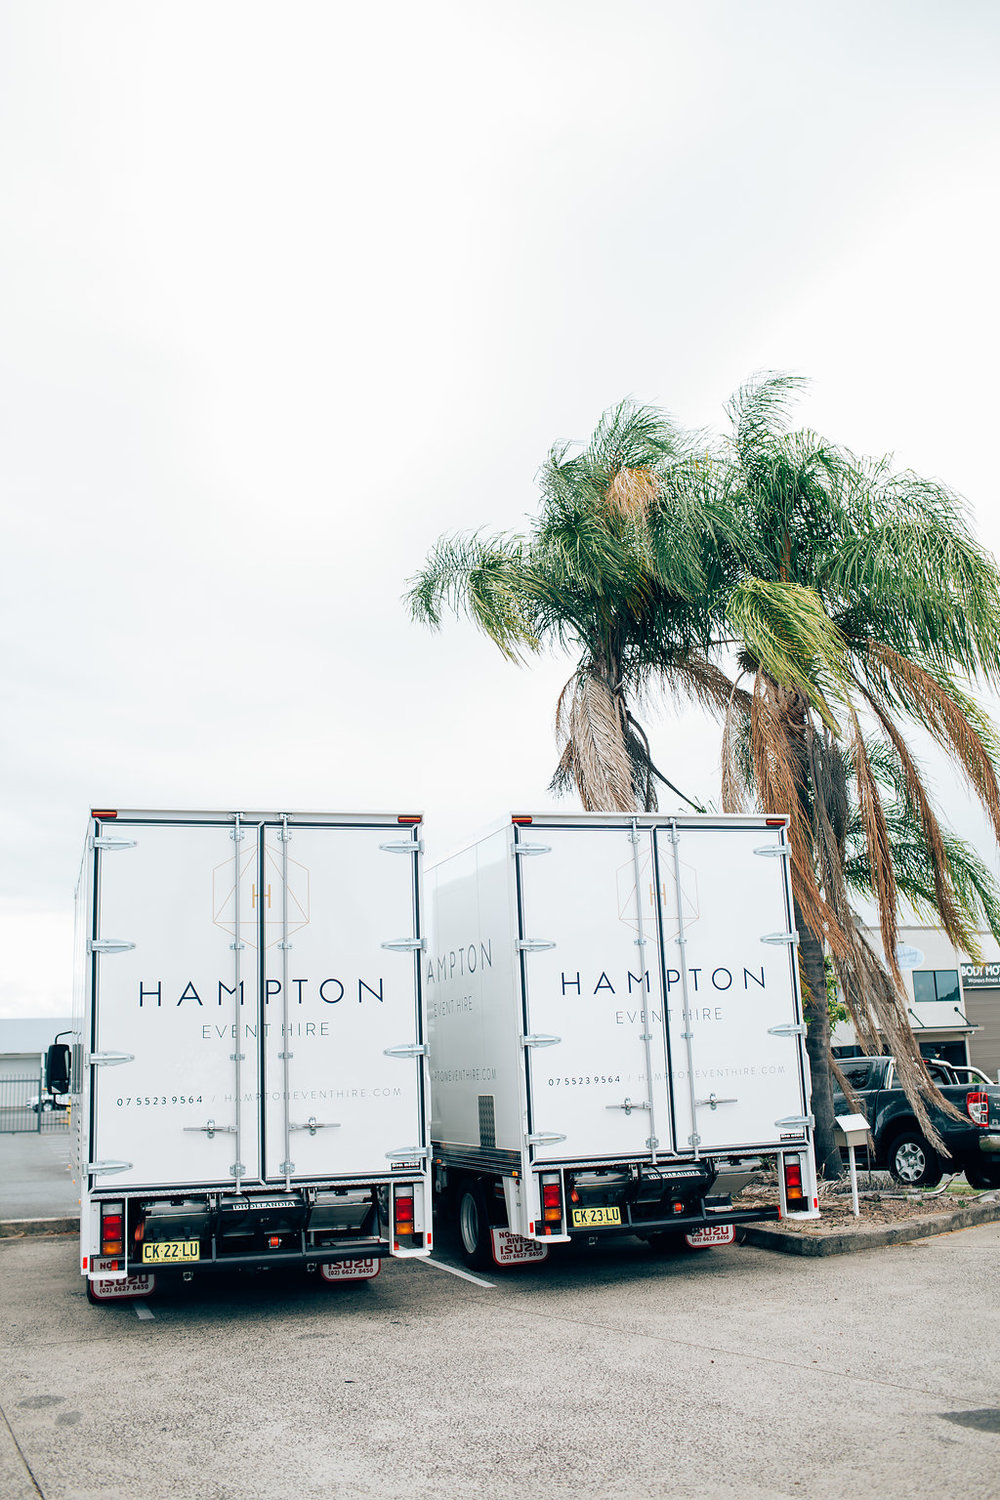 Hampton Event Hire - Wedding & Event Hire | www.hamptoneventhire.com | Brisbane - Gold Coast - Byron Bay | Image via Figtree Pictures